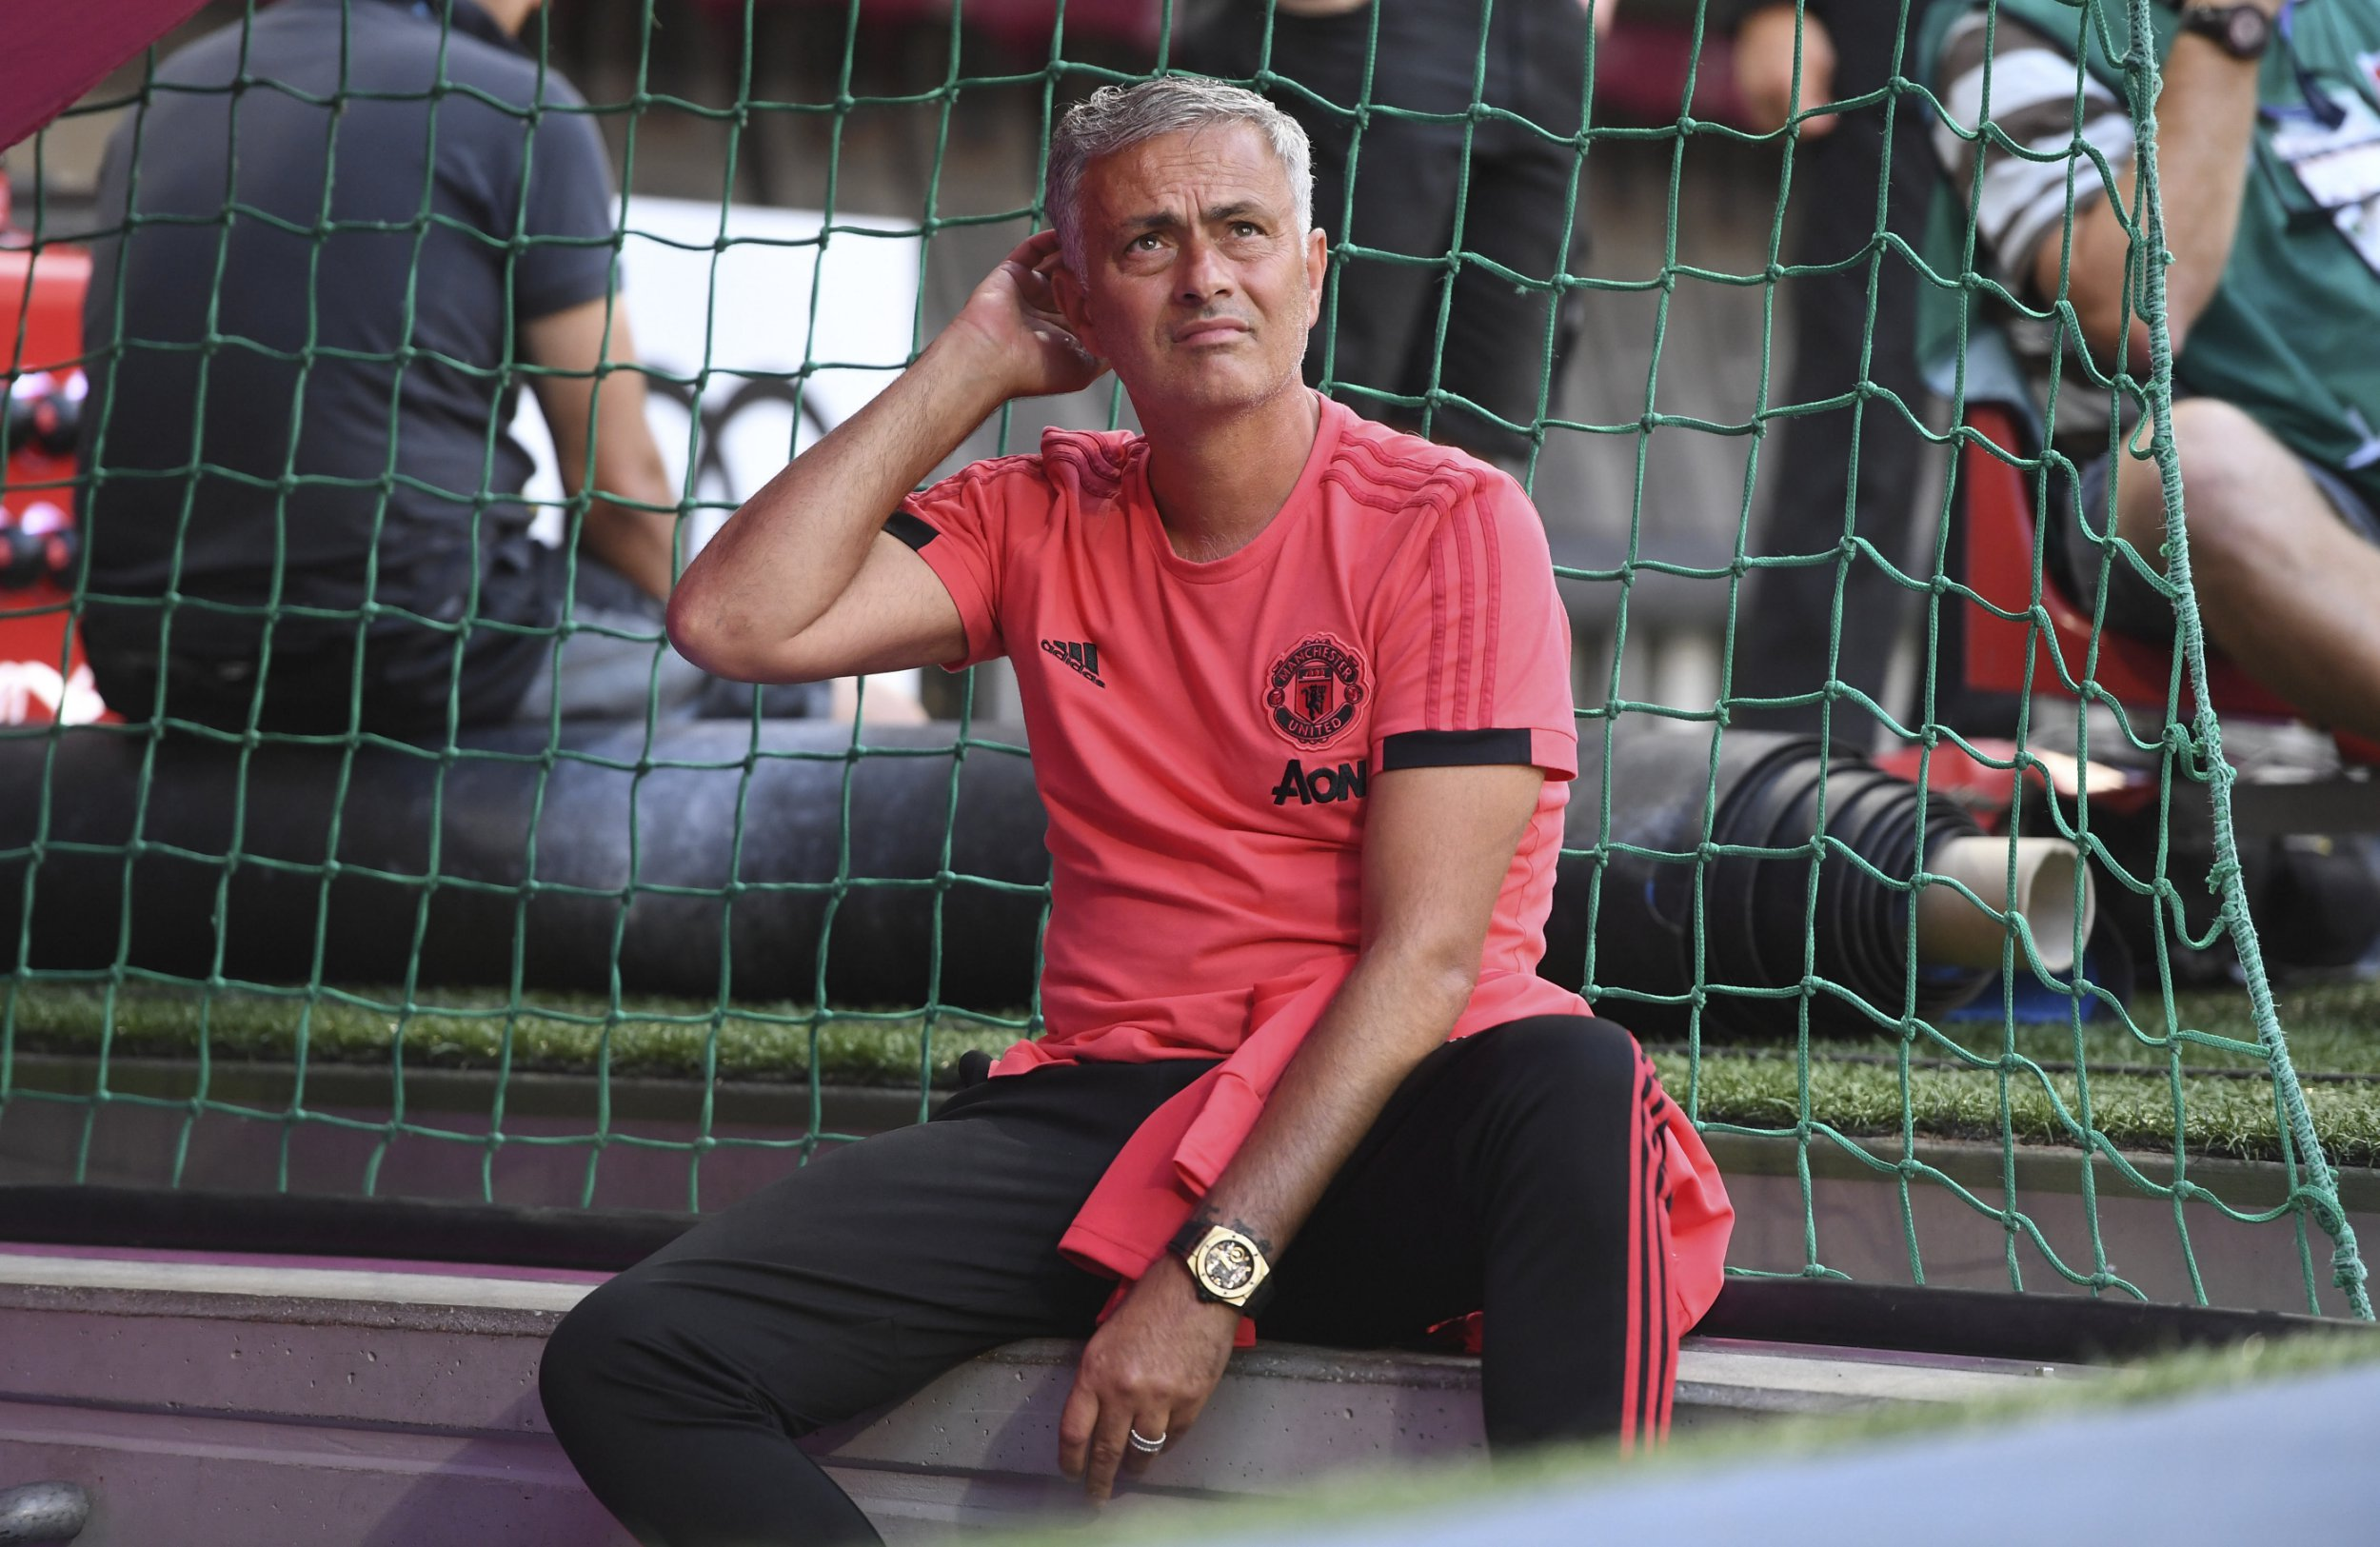 epa06929706 Manchester's head coach Jose Mourinho is seen prior to the friendly soccer match between FC Bayern Munich and Manchester United, in Munich, Germany, 05 August 2018. EPA/LUKAS BARTH-TUTTAS